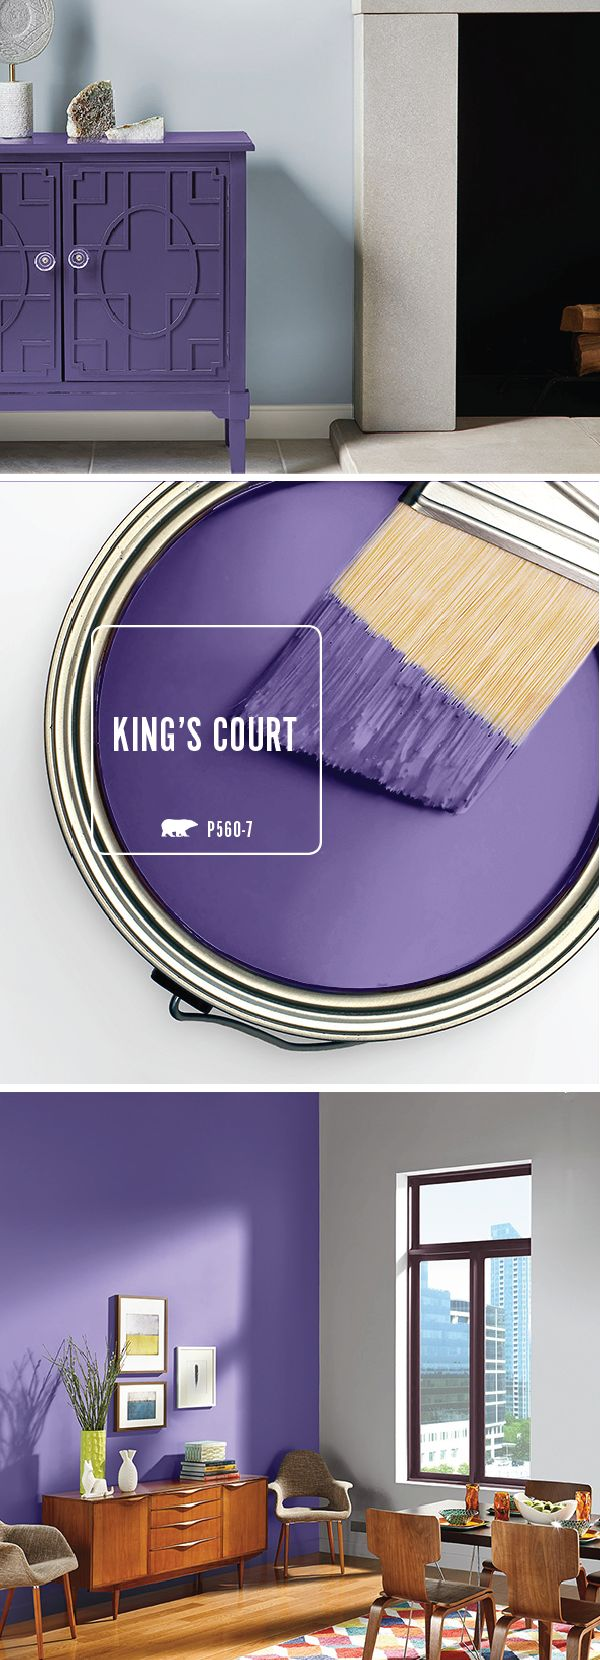 Get creative with the BEHR Paint Color of the Month: King's Court. This purple hue can be used to create a bold accent wall or a bright piece of furniture. Click here to see how you can accent this shade with light neutrals and warm wood tones.